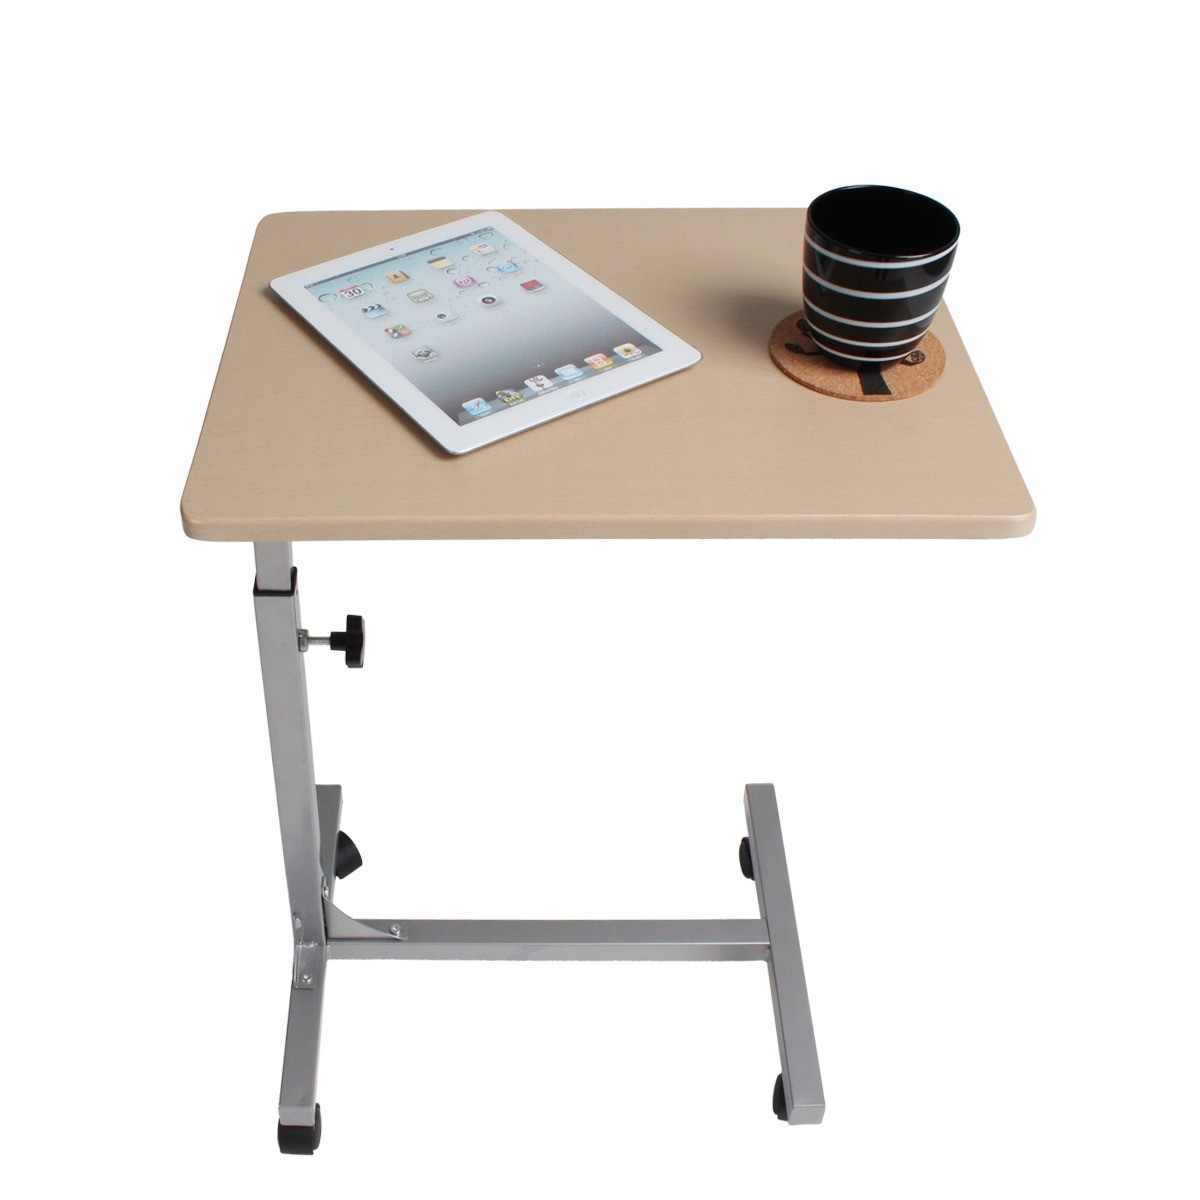 laptop tray table inspirational home decorating with foremost cup holder end remote magazine book for drink badcok furinture nespresso capsule metal accent mirrored coffee target